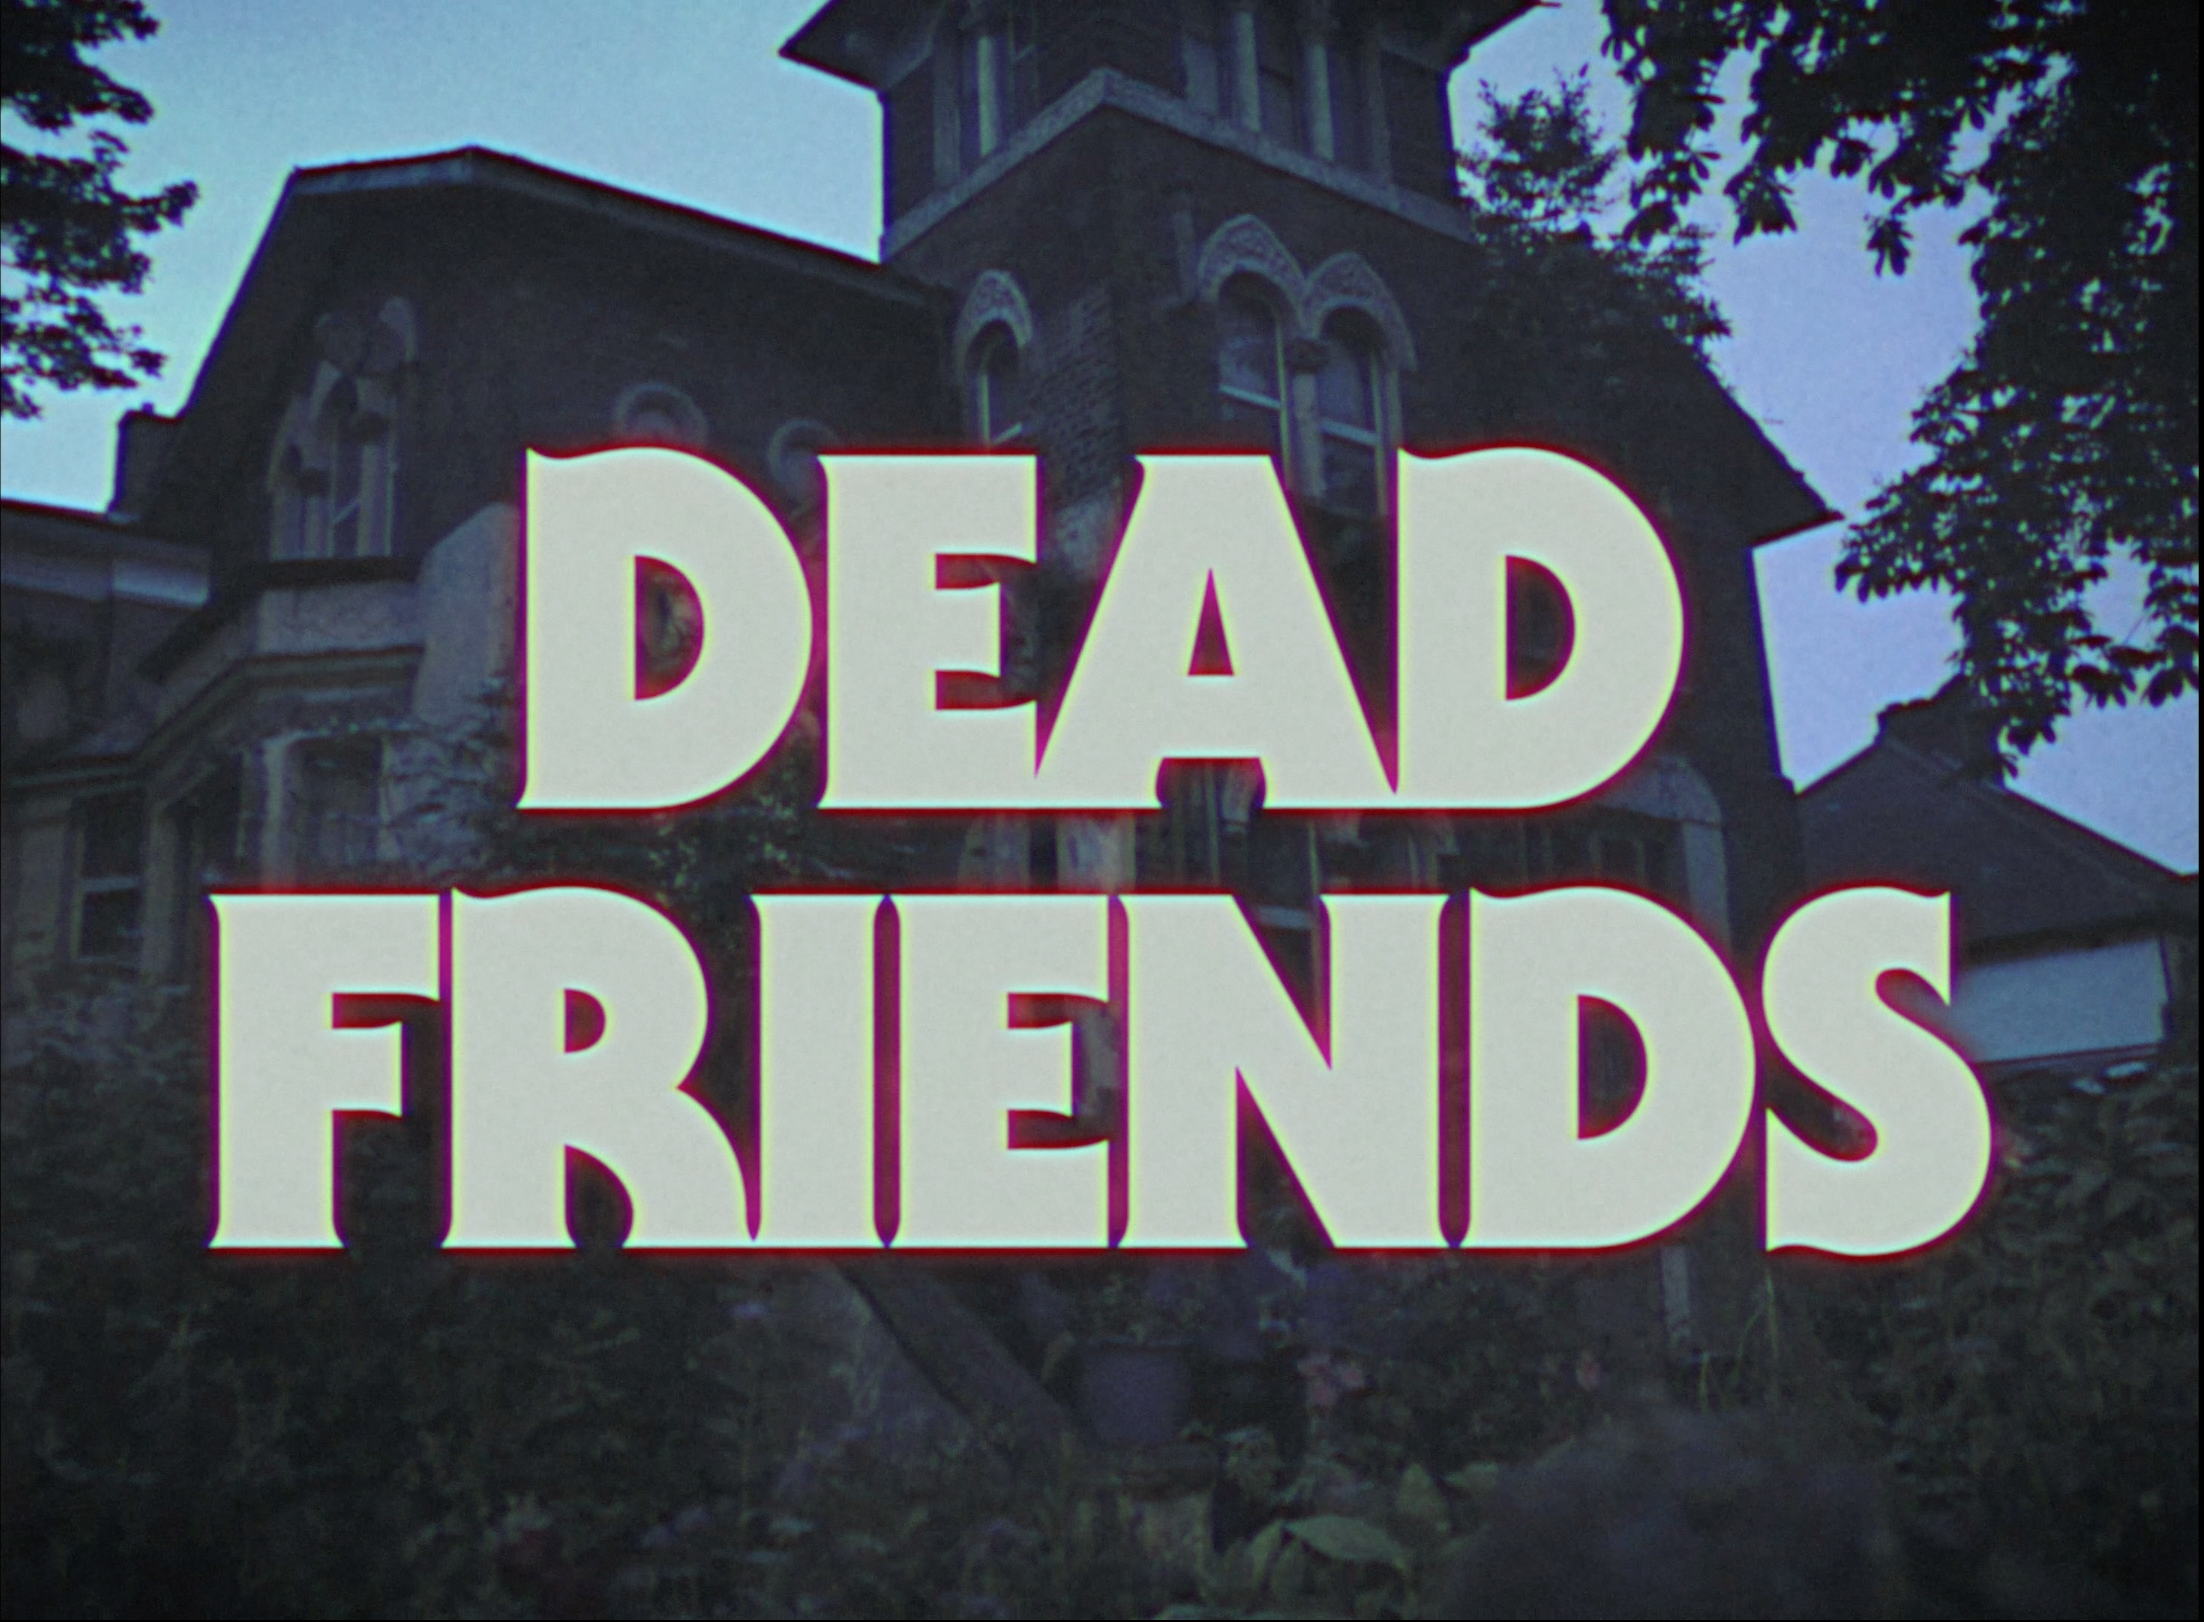 'Dead Friends' - Natural Mystery Museum